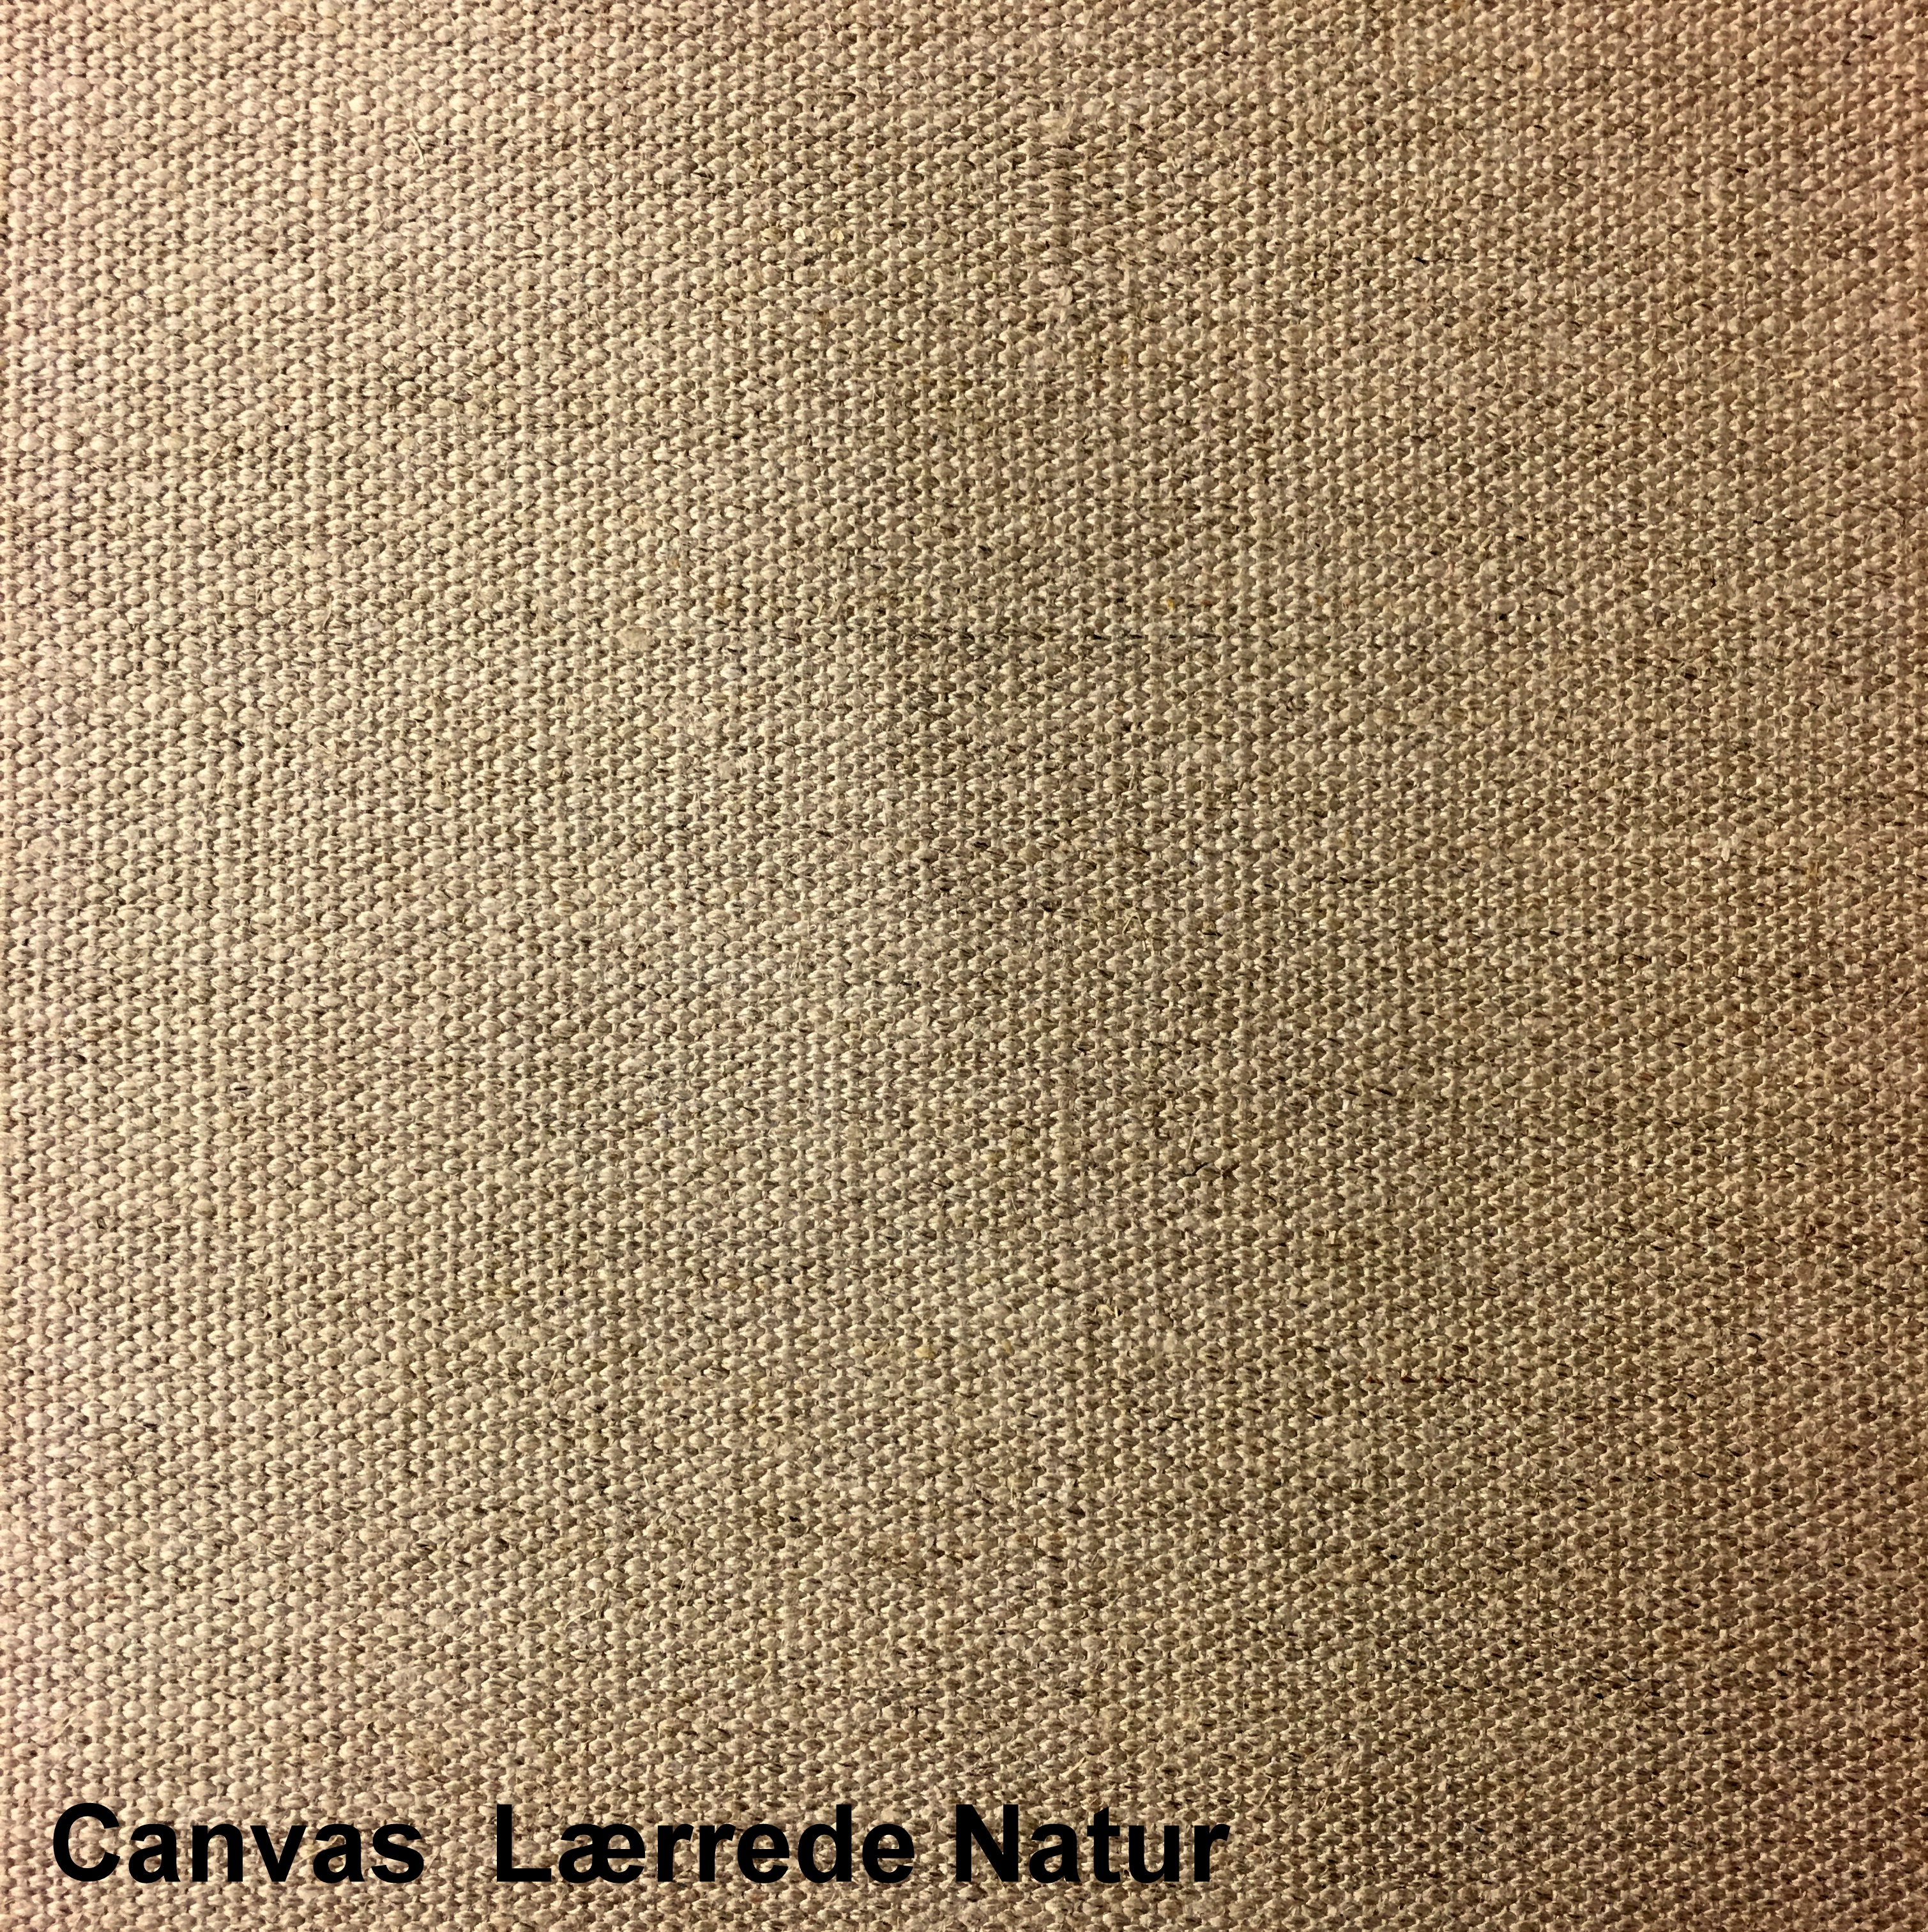 Canvas (Max 15 prover totalt per kund)